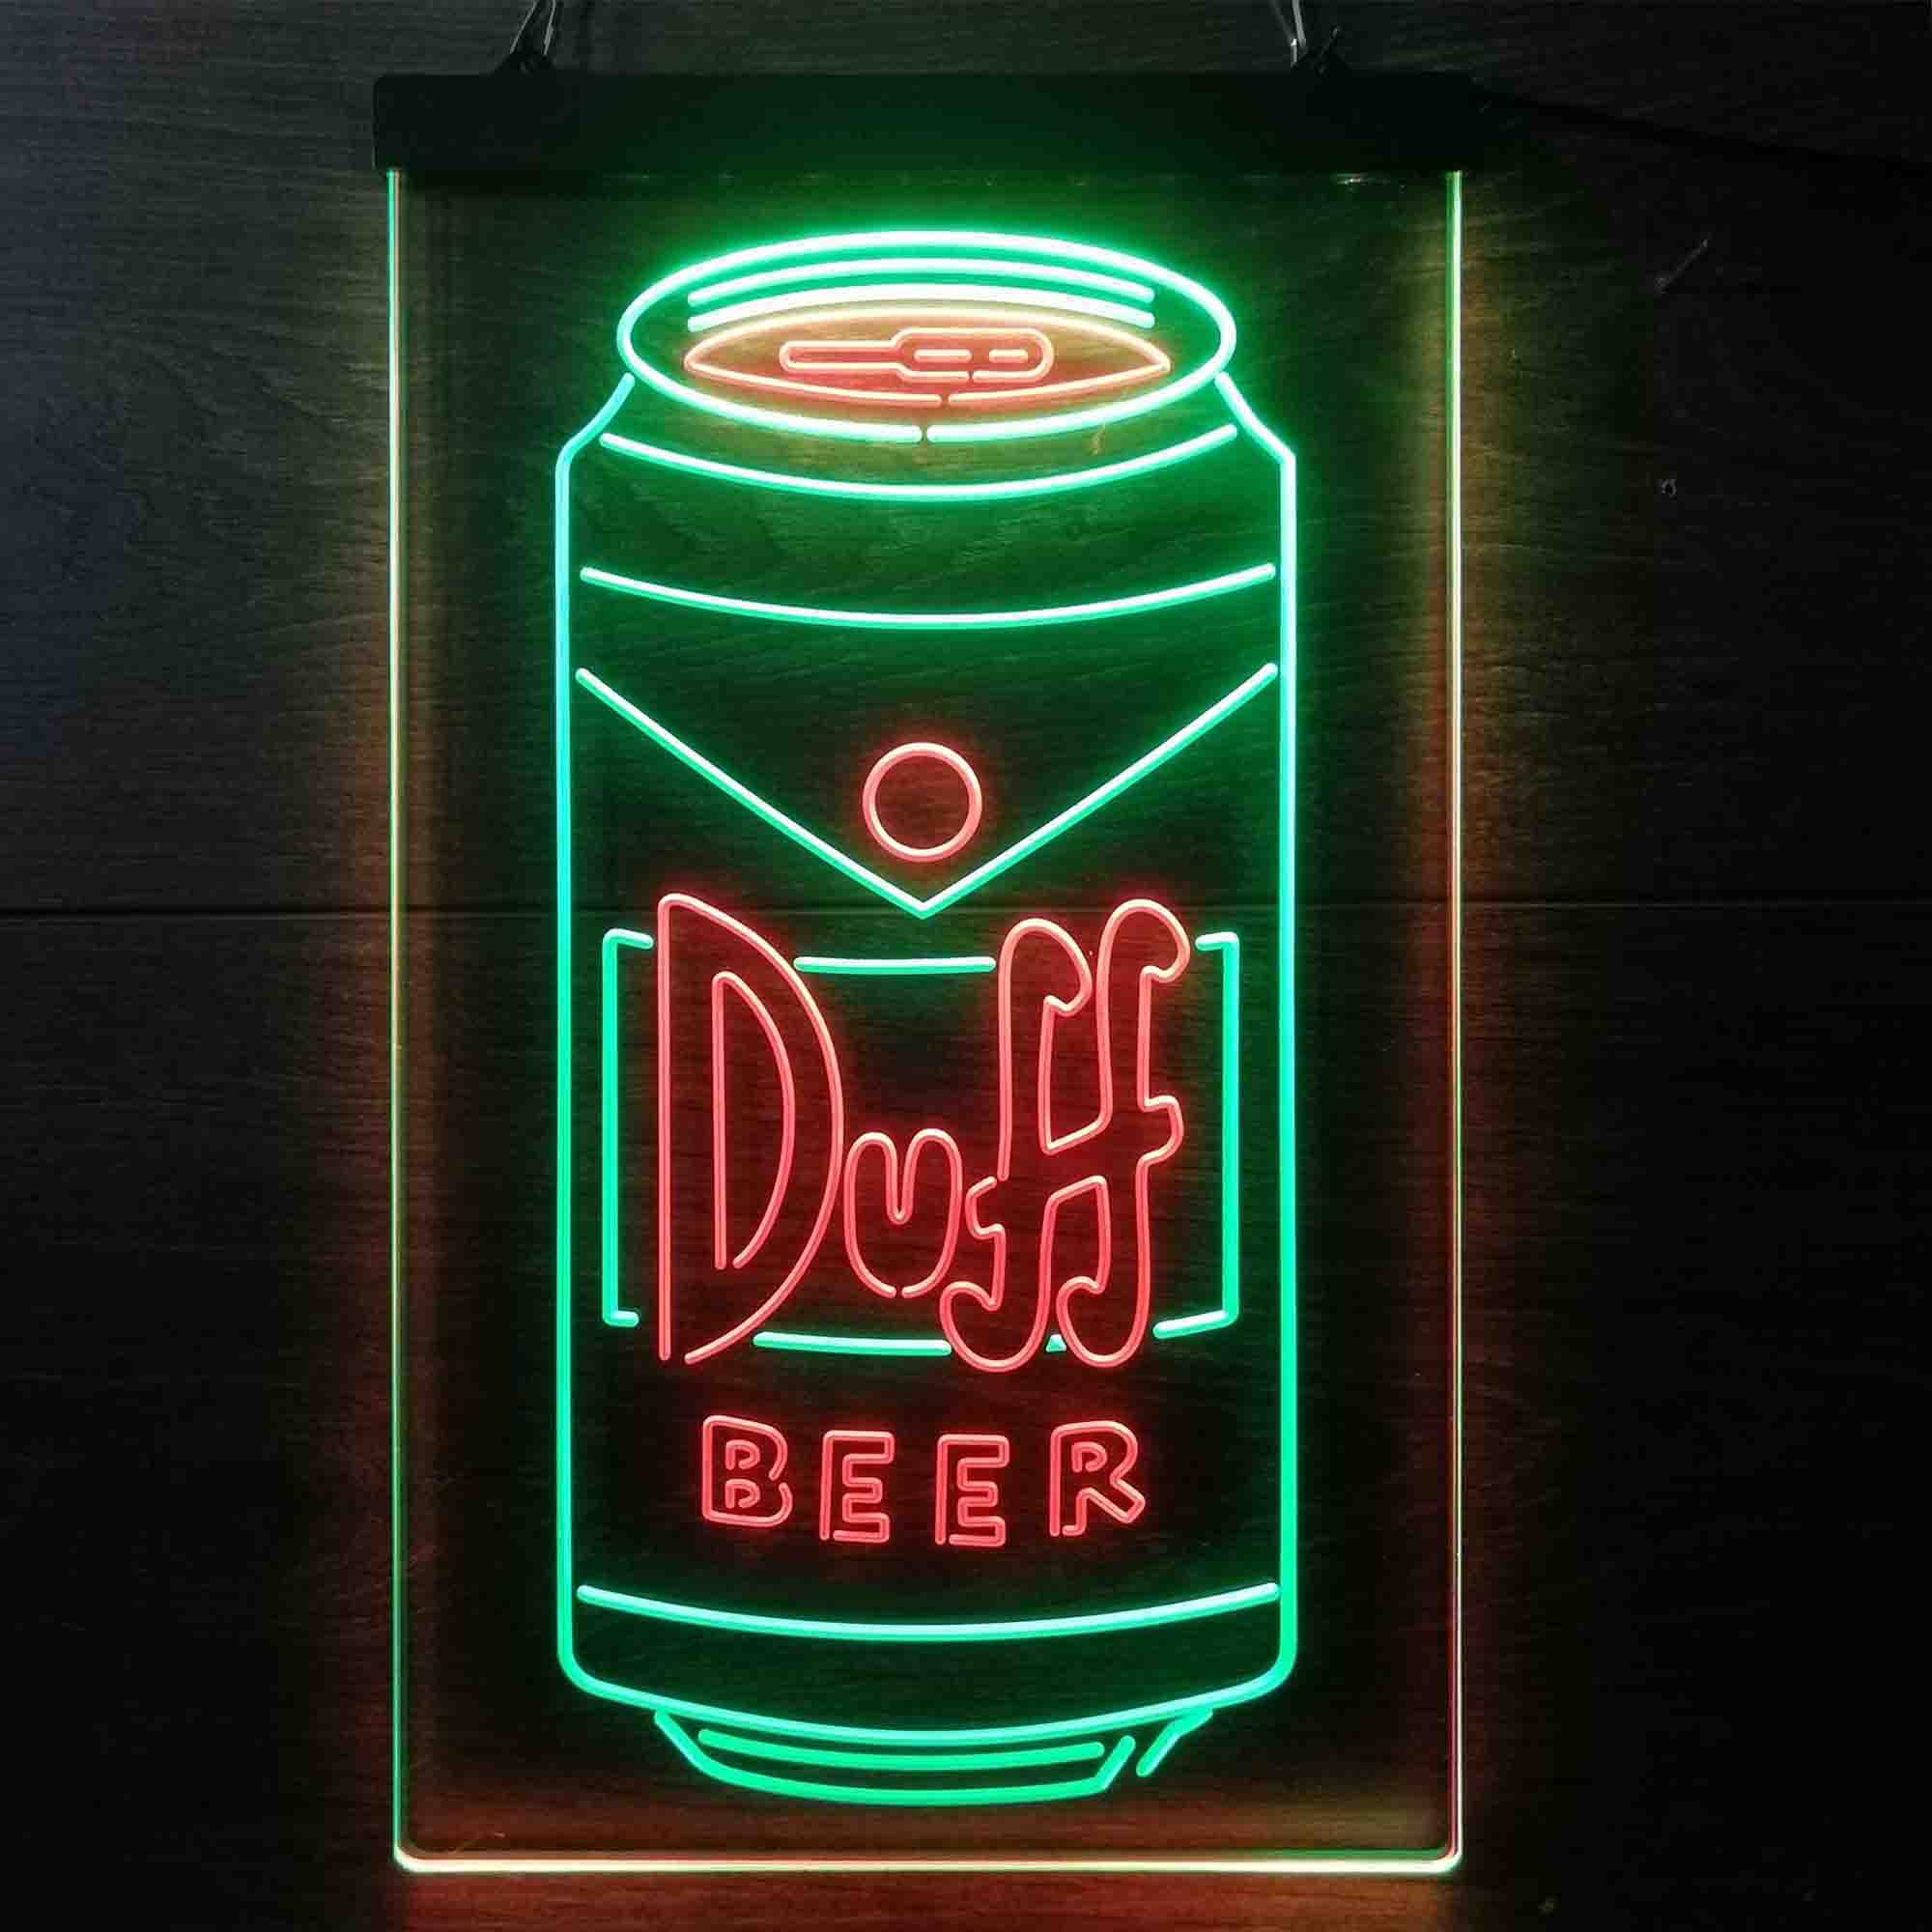 Duff Beer Bottle Vertical Dual Color LED Neon Sign ProLedSign